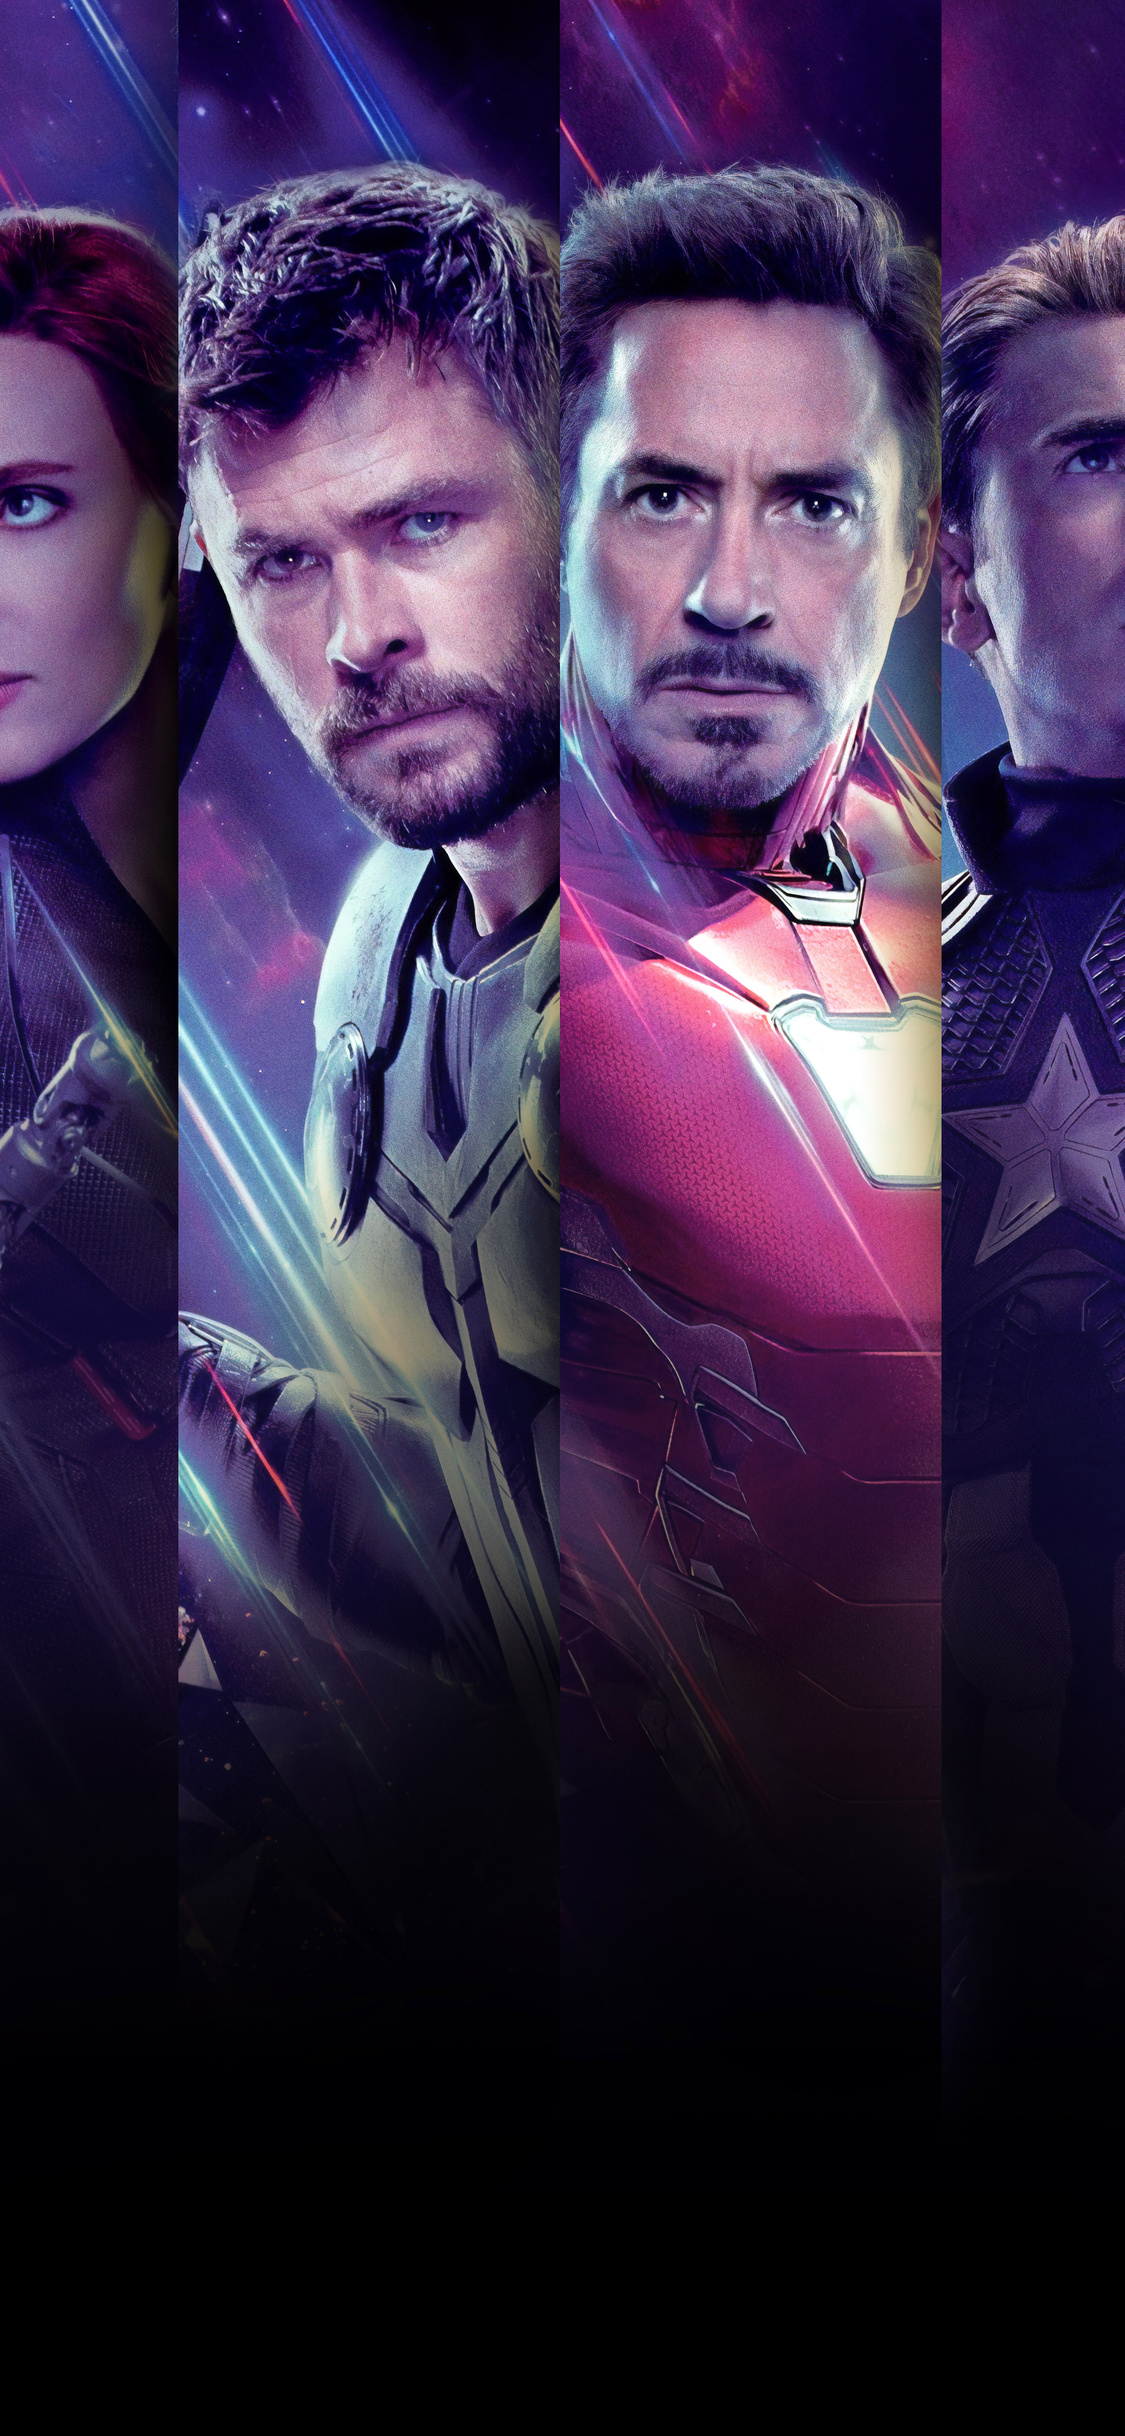 avengers-end-game-collage-poster-12k-72.jpg